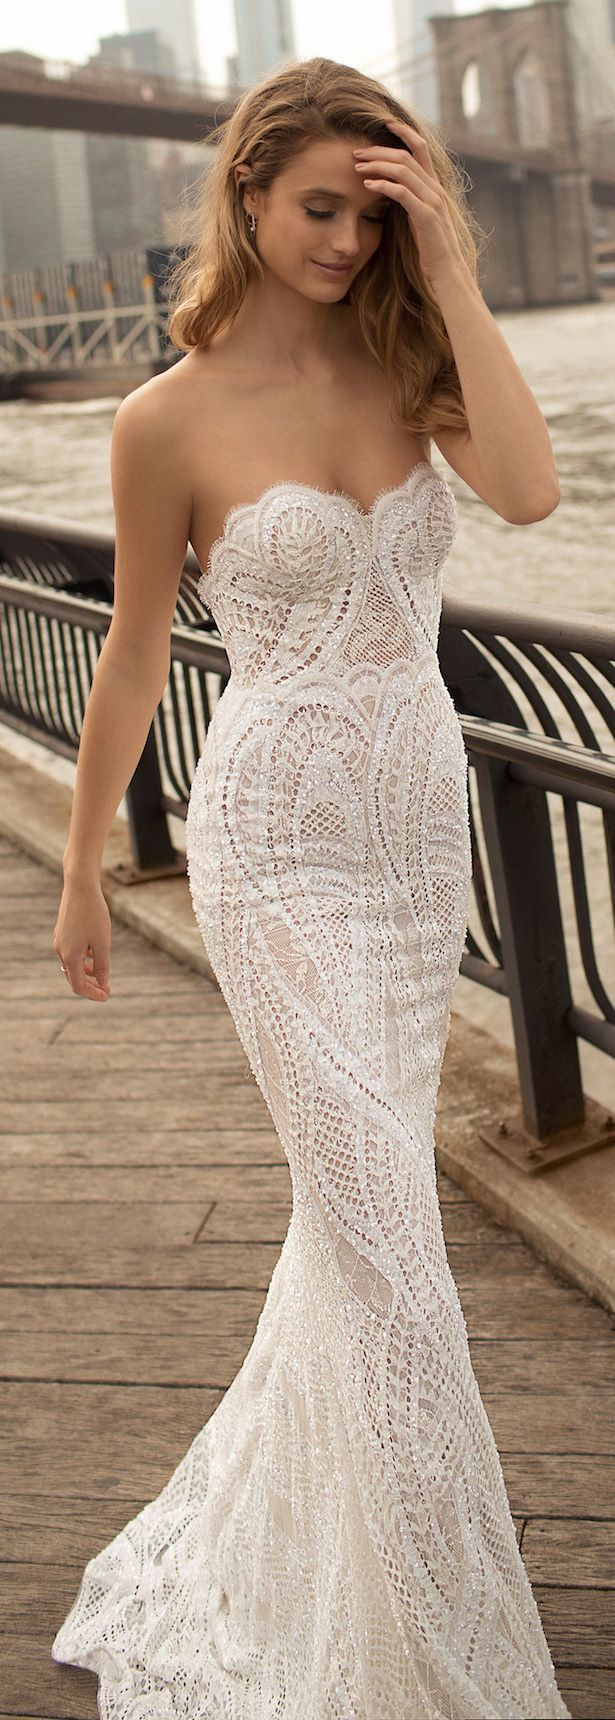 The Wedded Pin | Berta Wedding Dress Collection Spring 2018